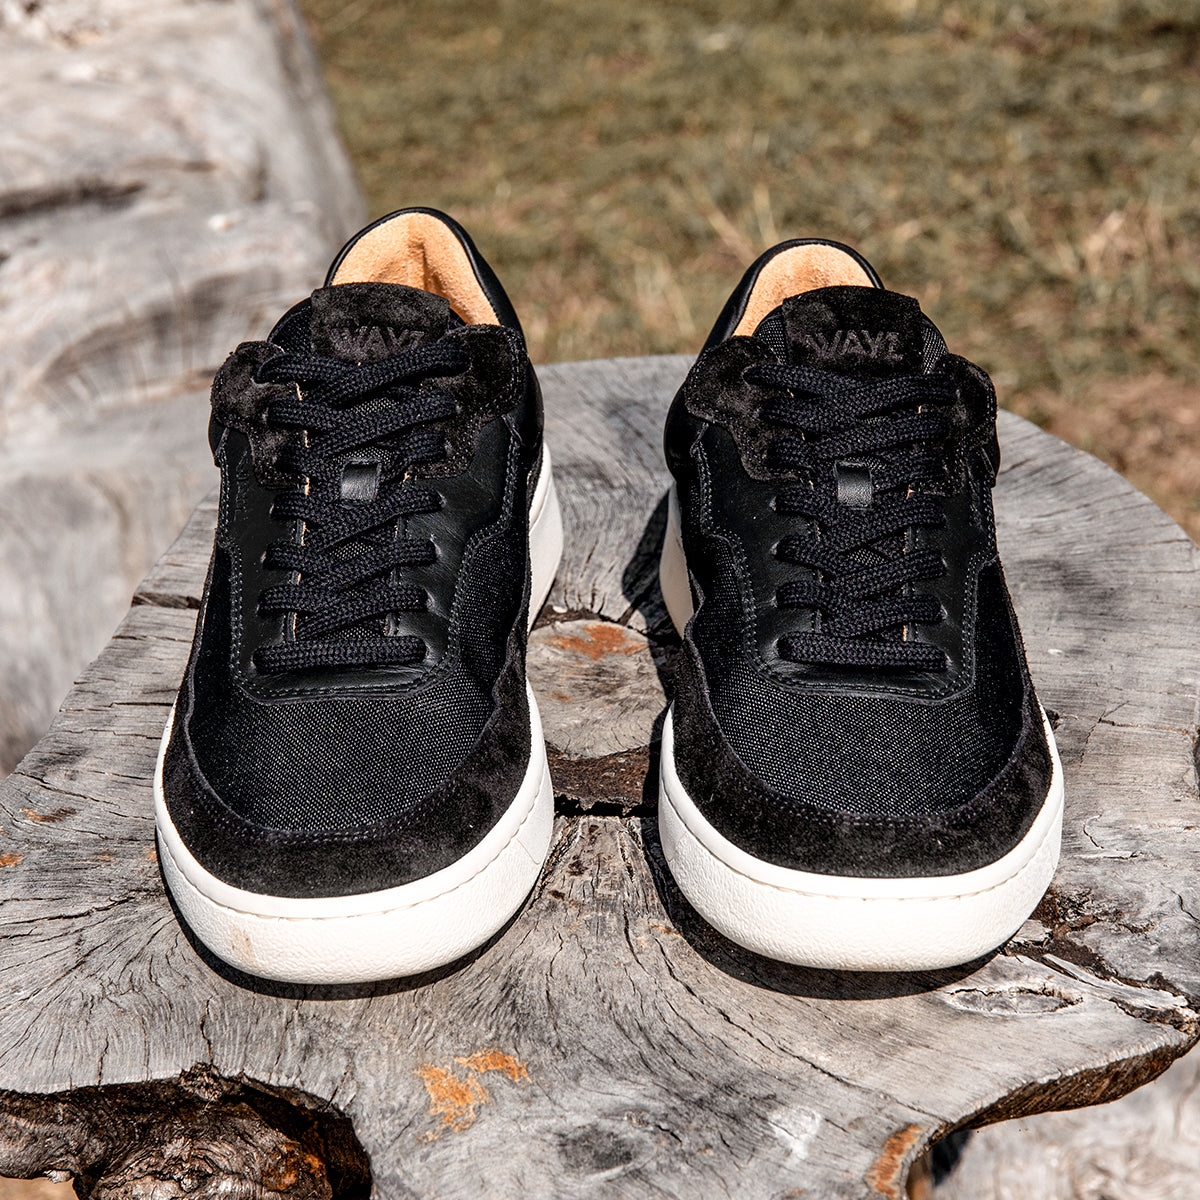 The Hedonist Sneakers